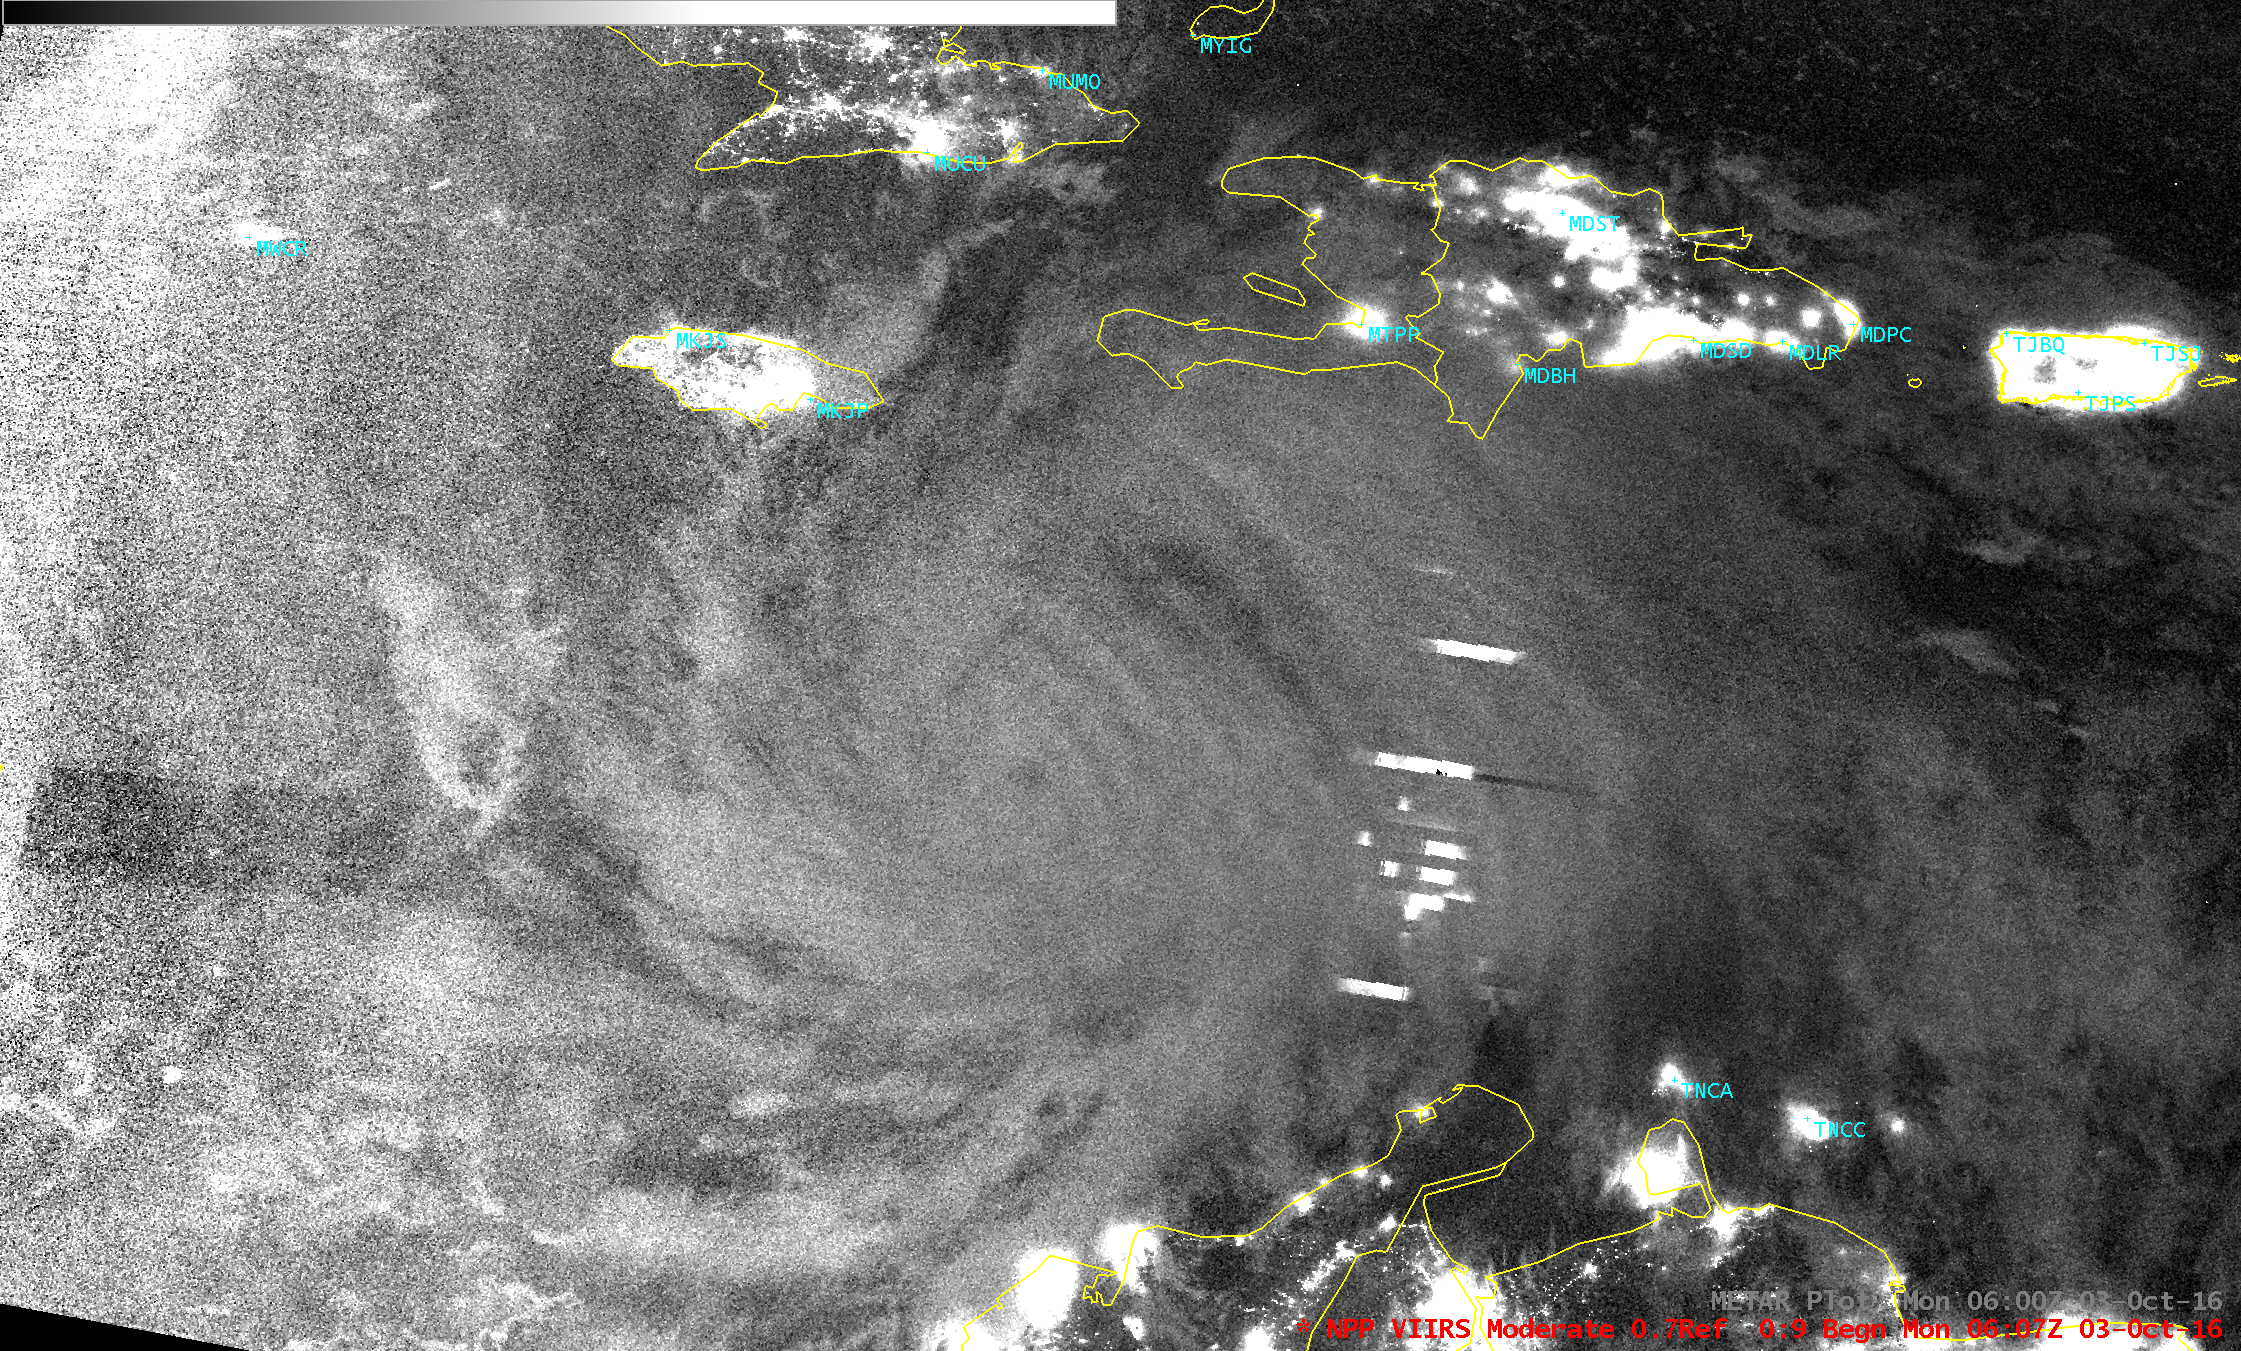 Suomi NPP VIIRS Day/Night Band (0.70 µm) image [Click to enlarge]